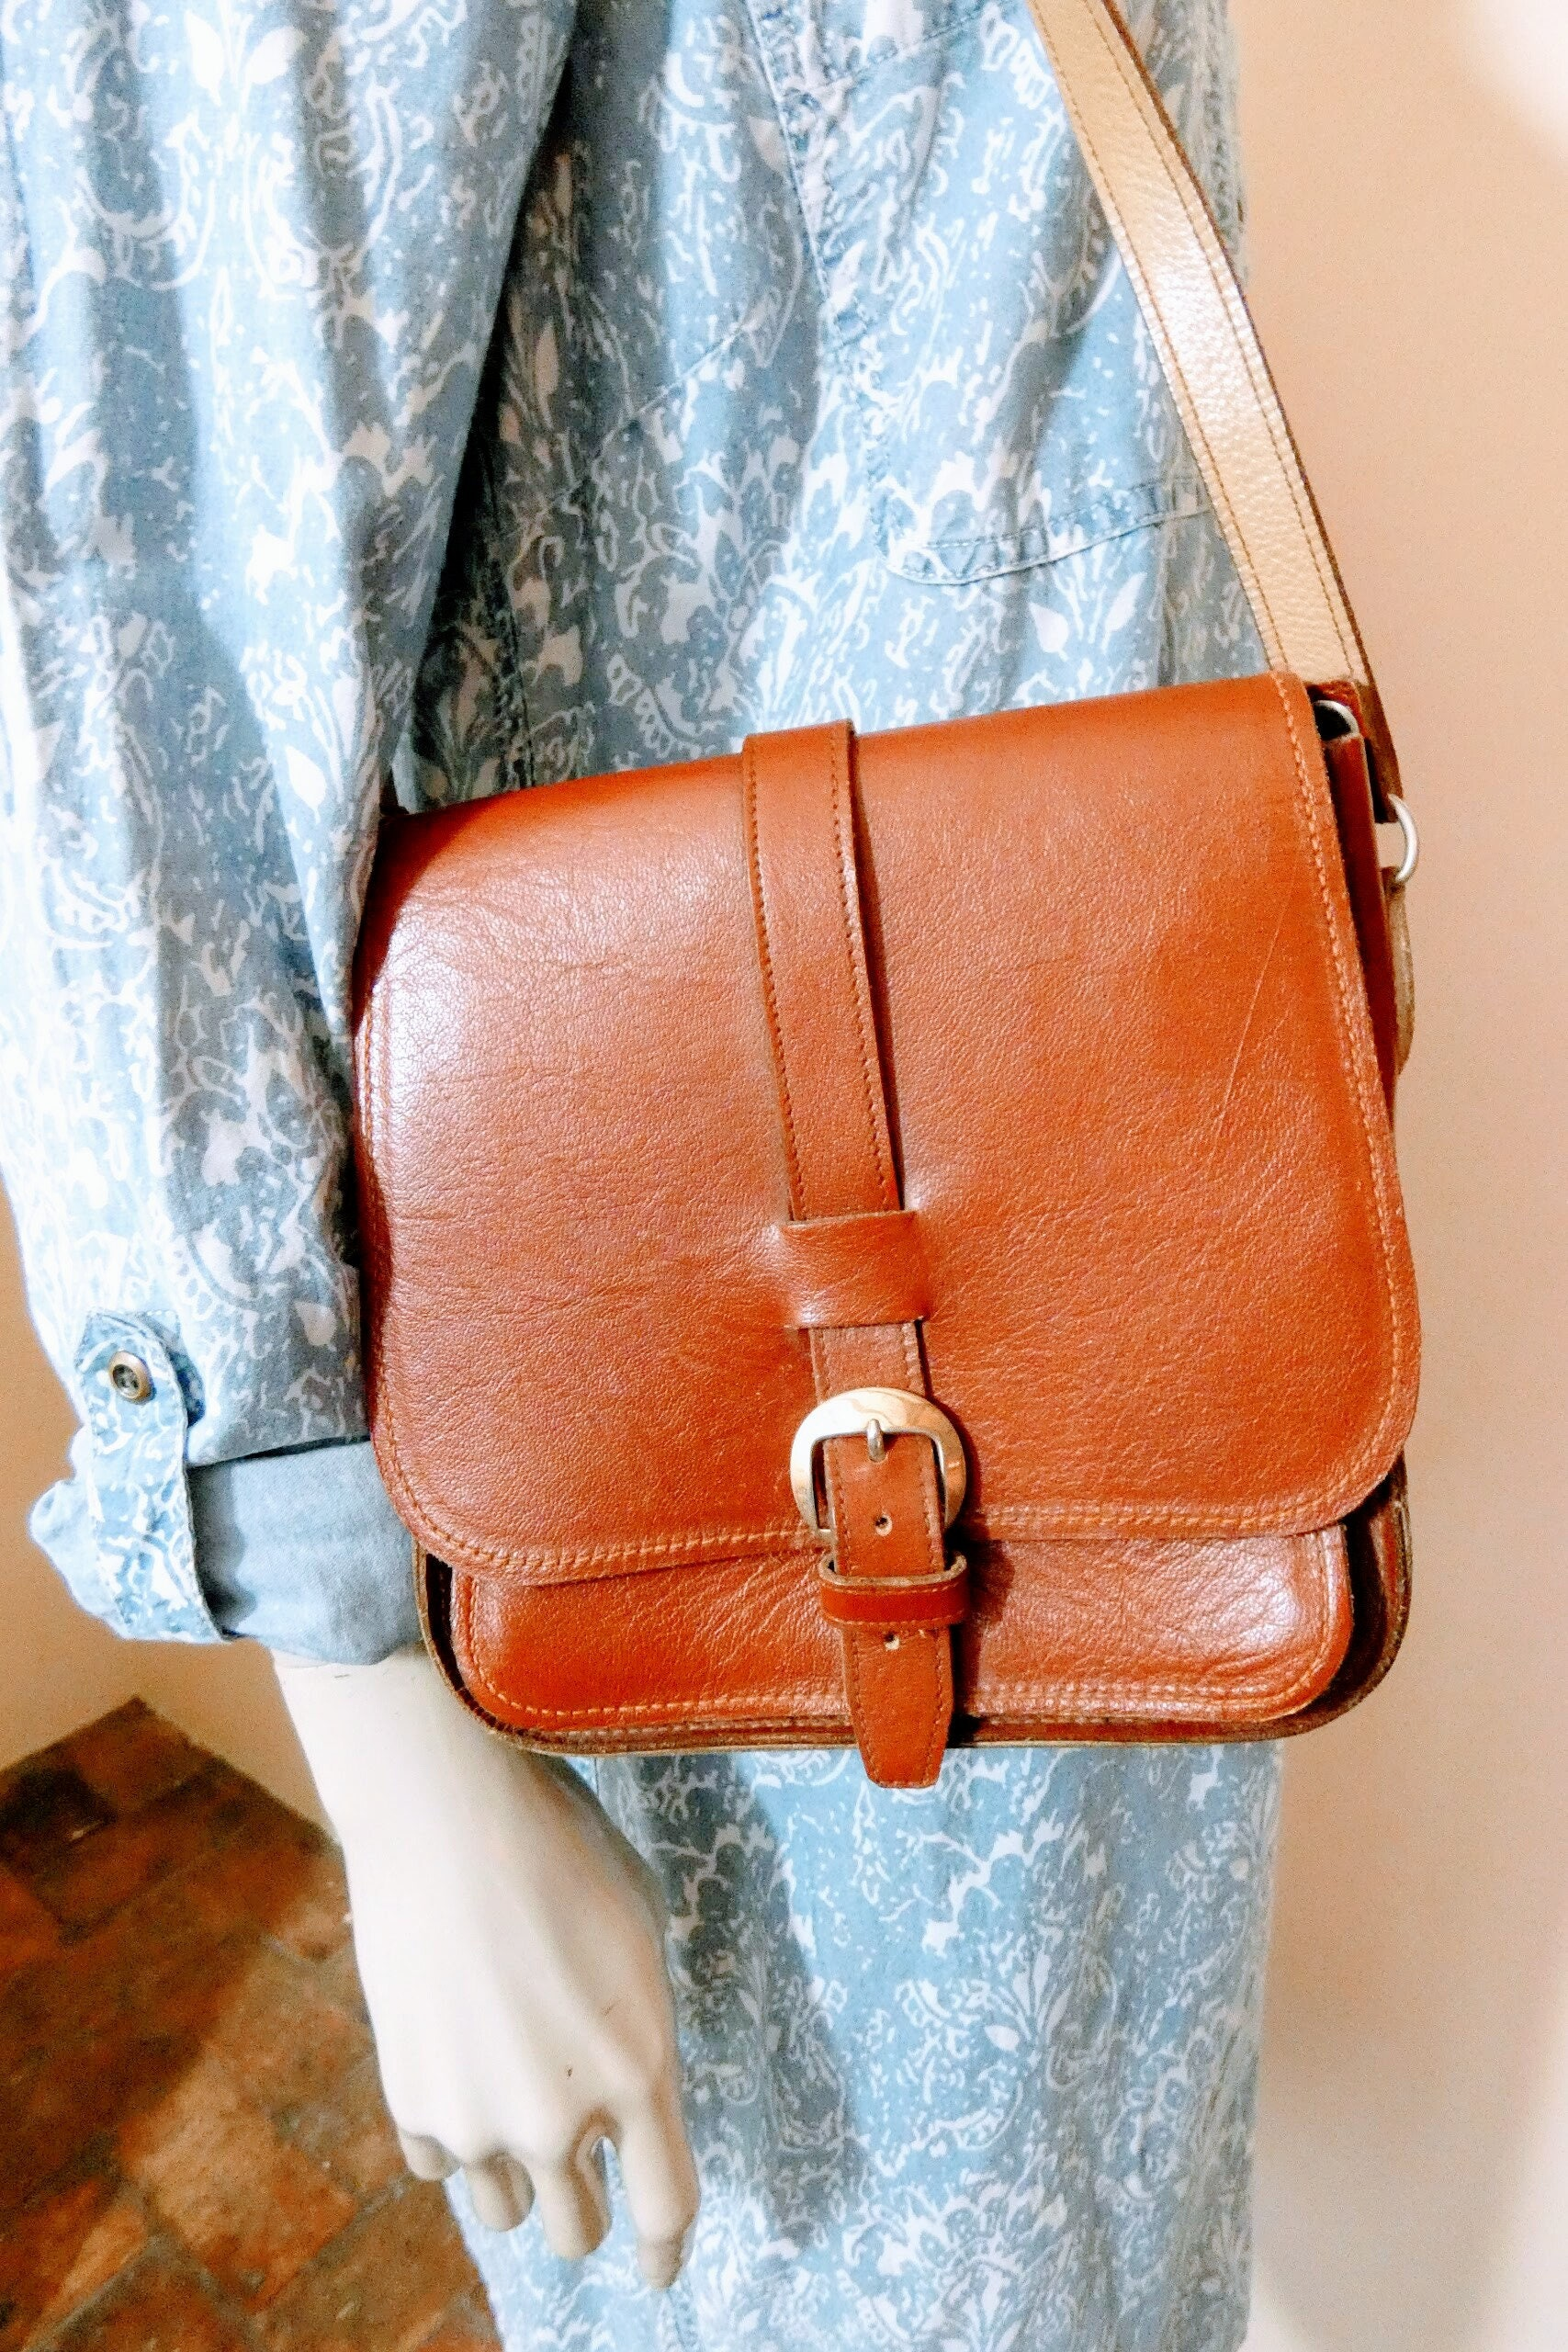 Original Vintage 70s Leather Satchel Brown Messenger Bag Shoulder Handbag